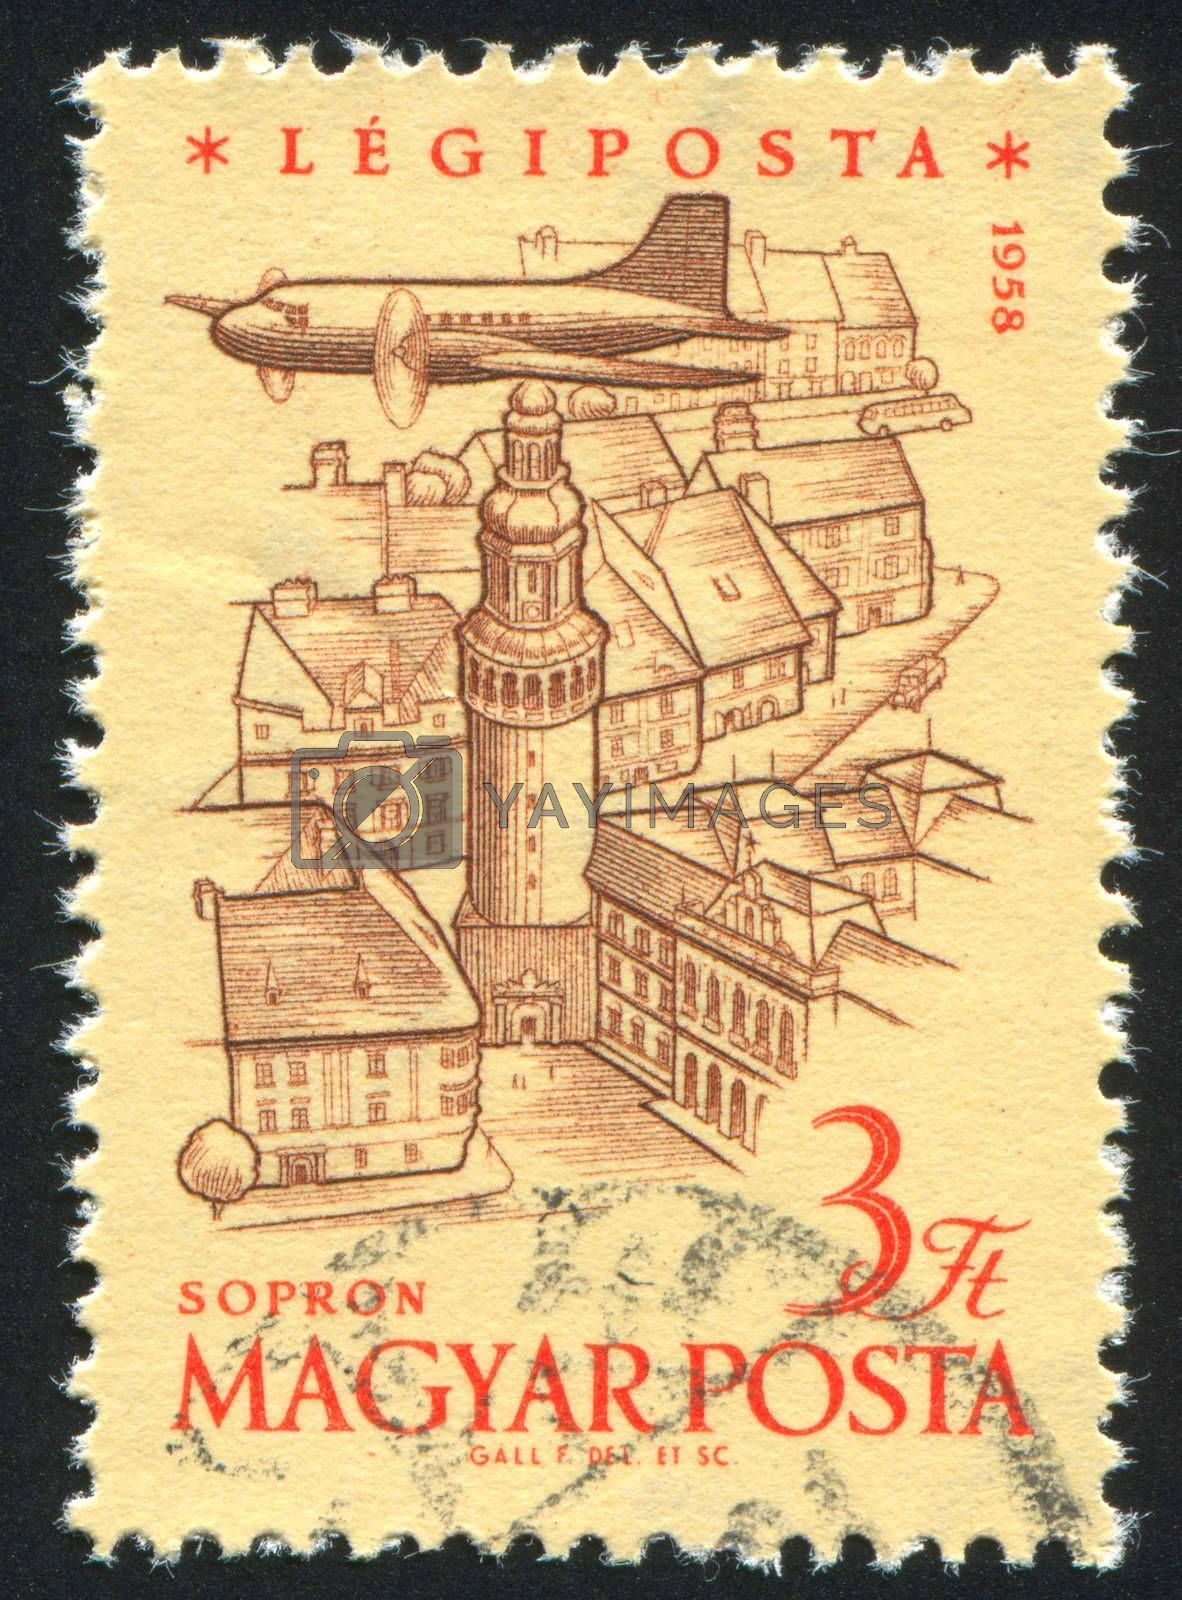 HUNGARY - CIRCA 1958: stamp printed by Hungary, shows Plane over Tower of Sopron, circa 1958